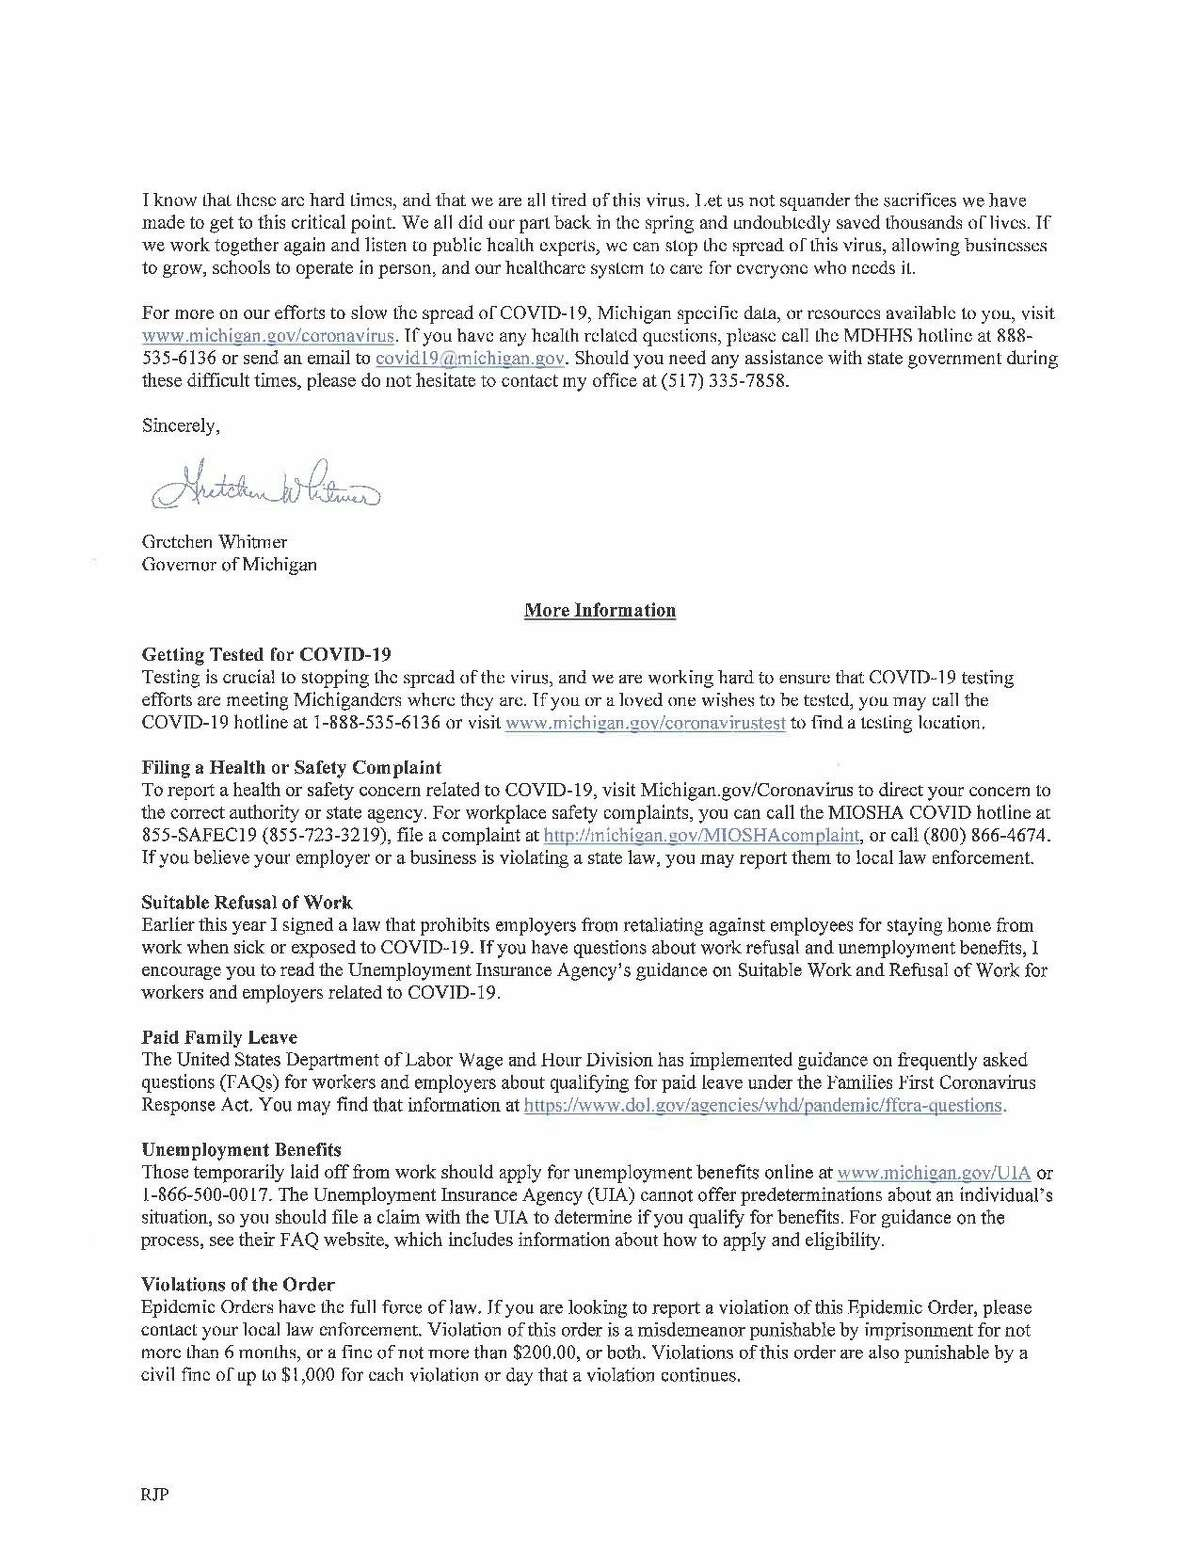 Governor Whitmer's letter sent to the commissioners earlier this month explaining the need for the in-effect orders. (Courtesy Photo/Huron County)